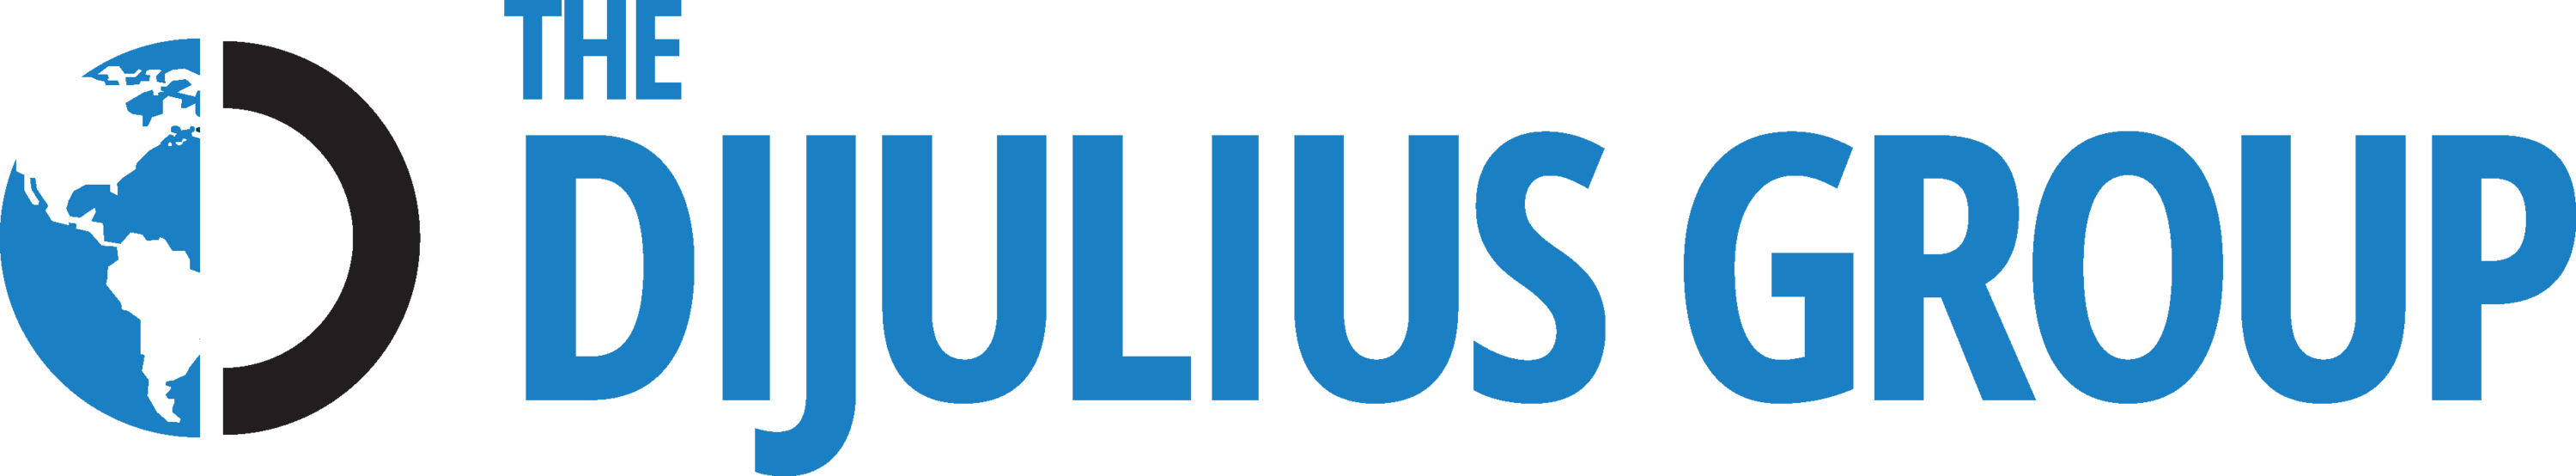 The DiJulius Group Customer Service Experience Consulting Consultants